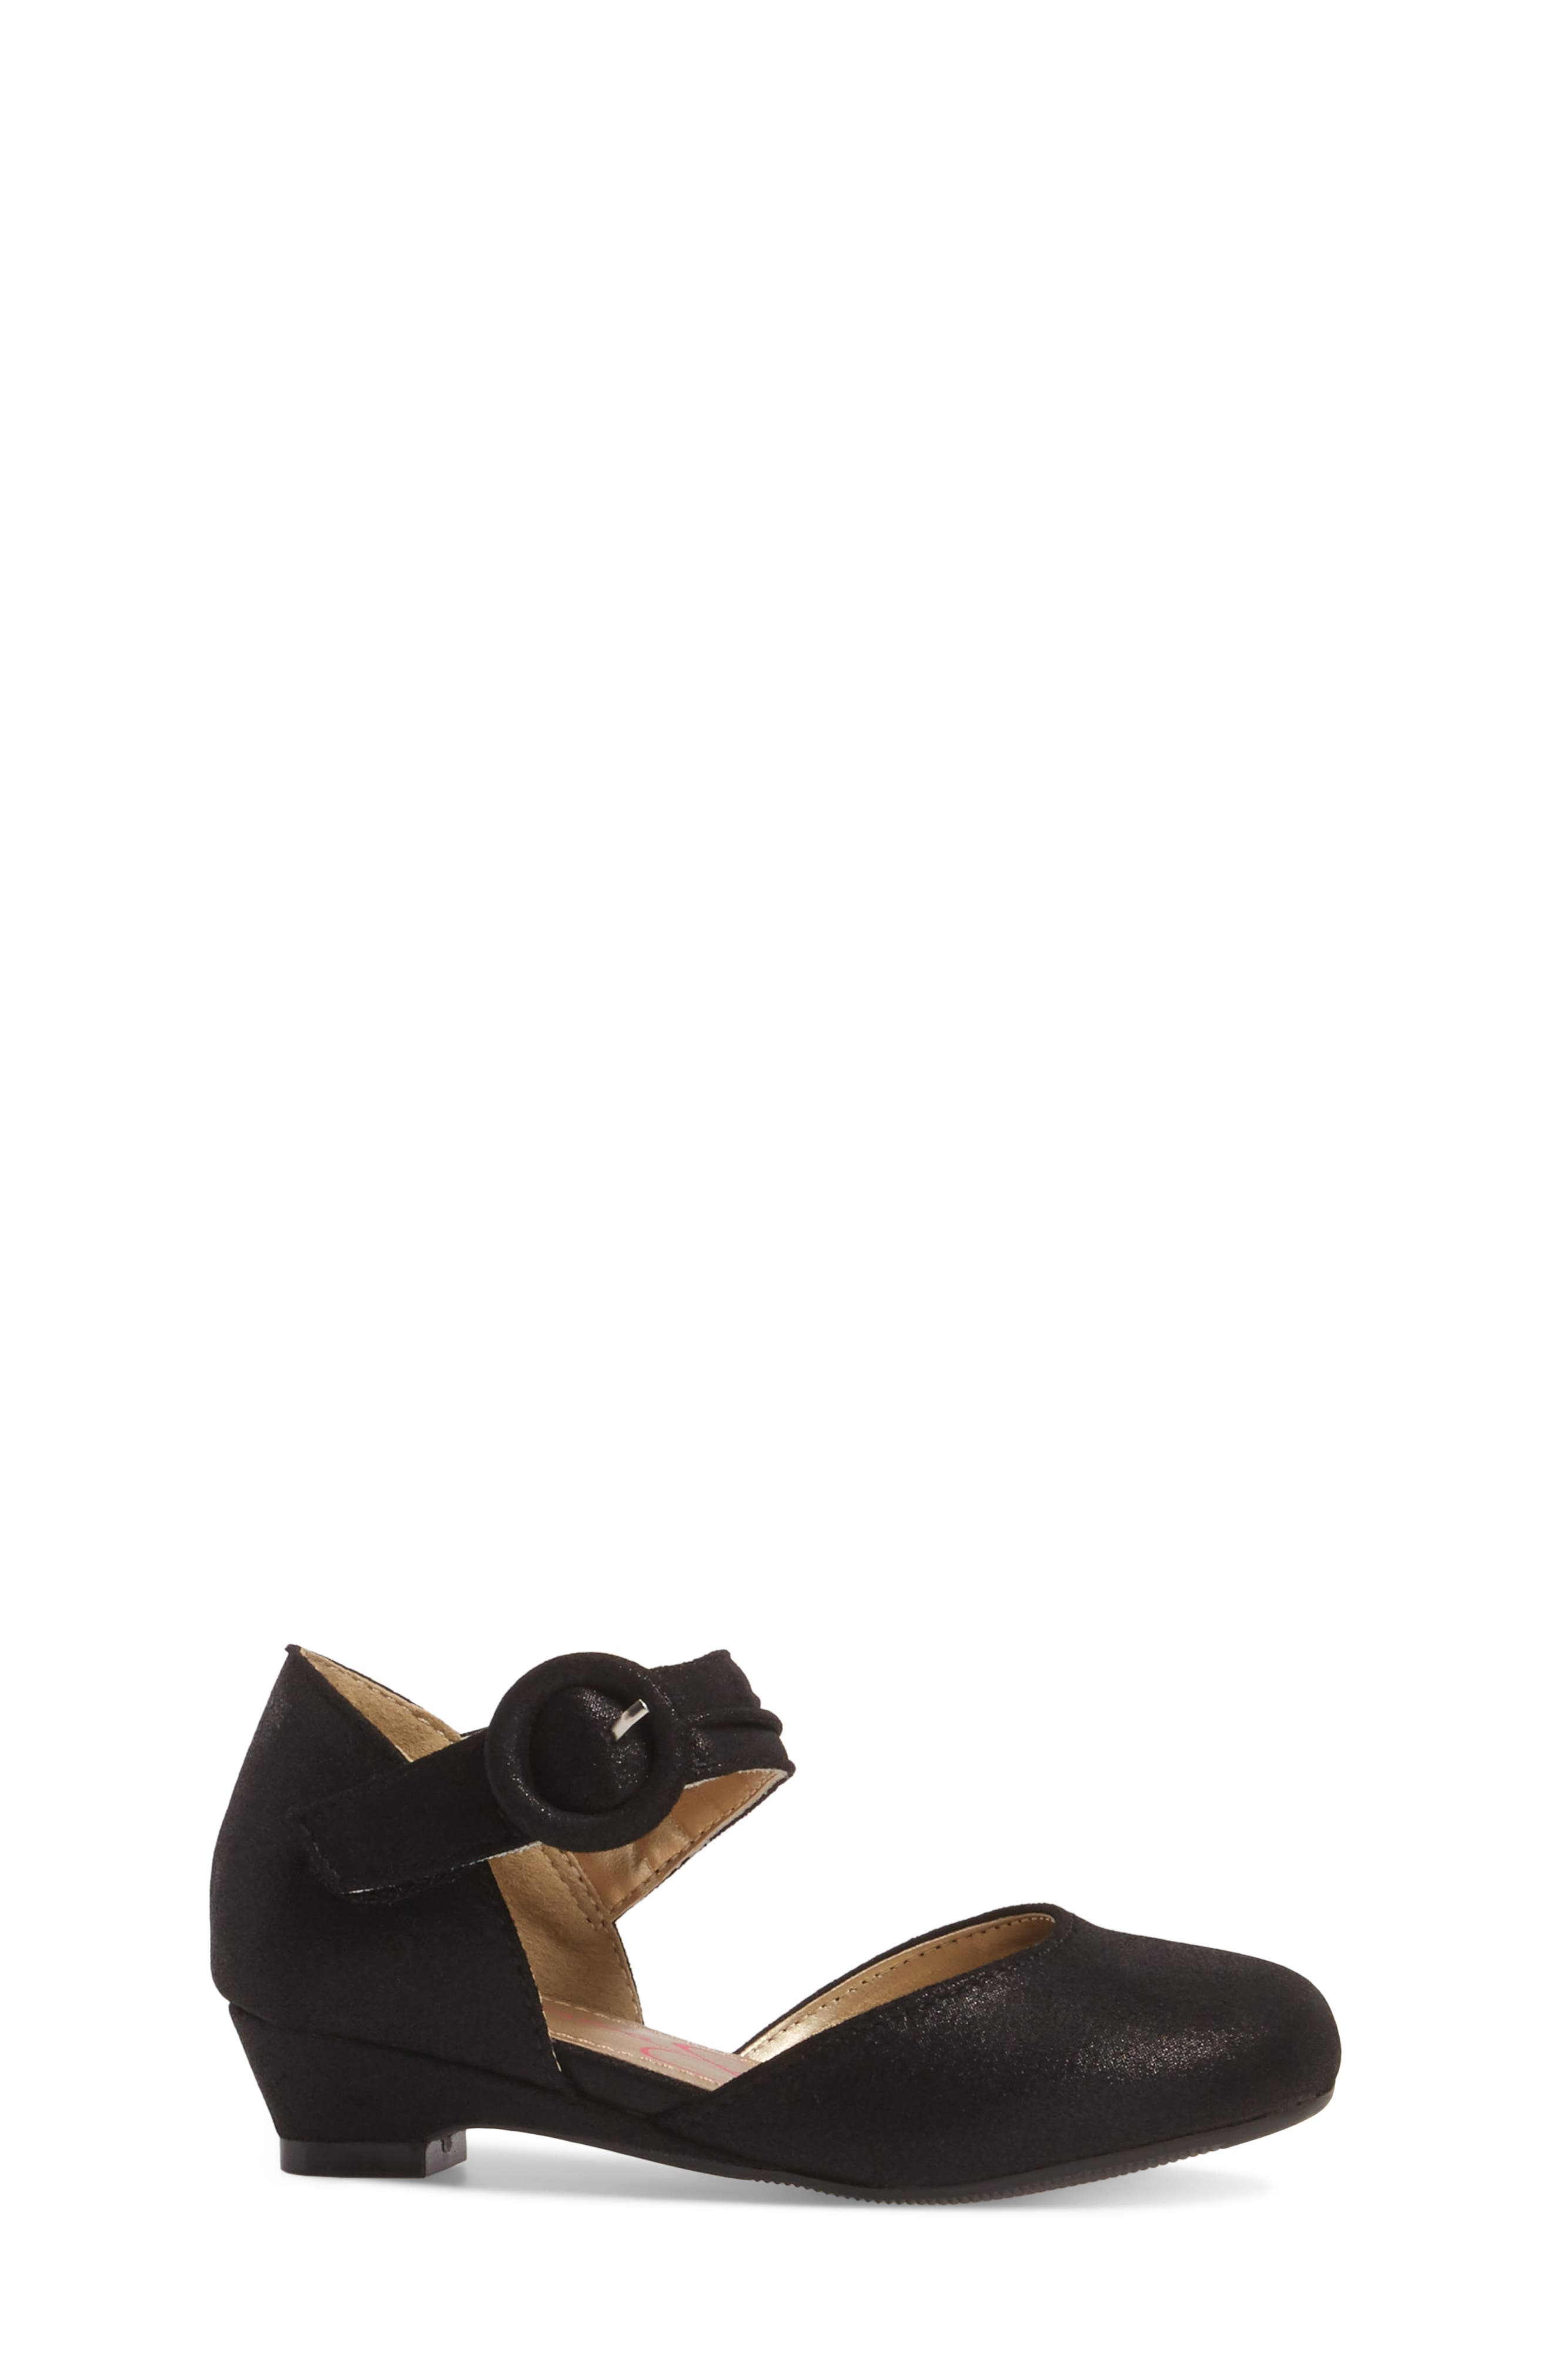 Tiana Shimmery Pump,                             Alternate thumbnail 3, color,                             Black Suede